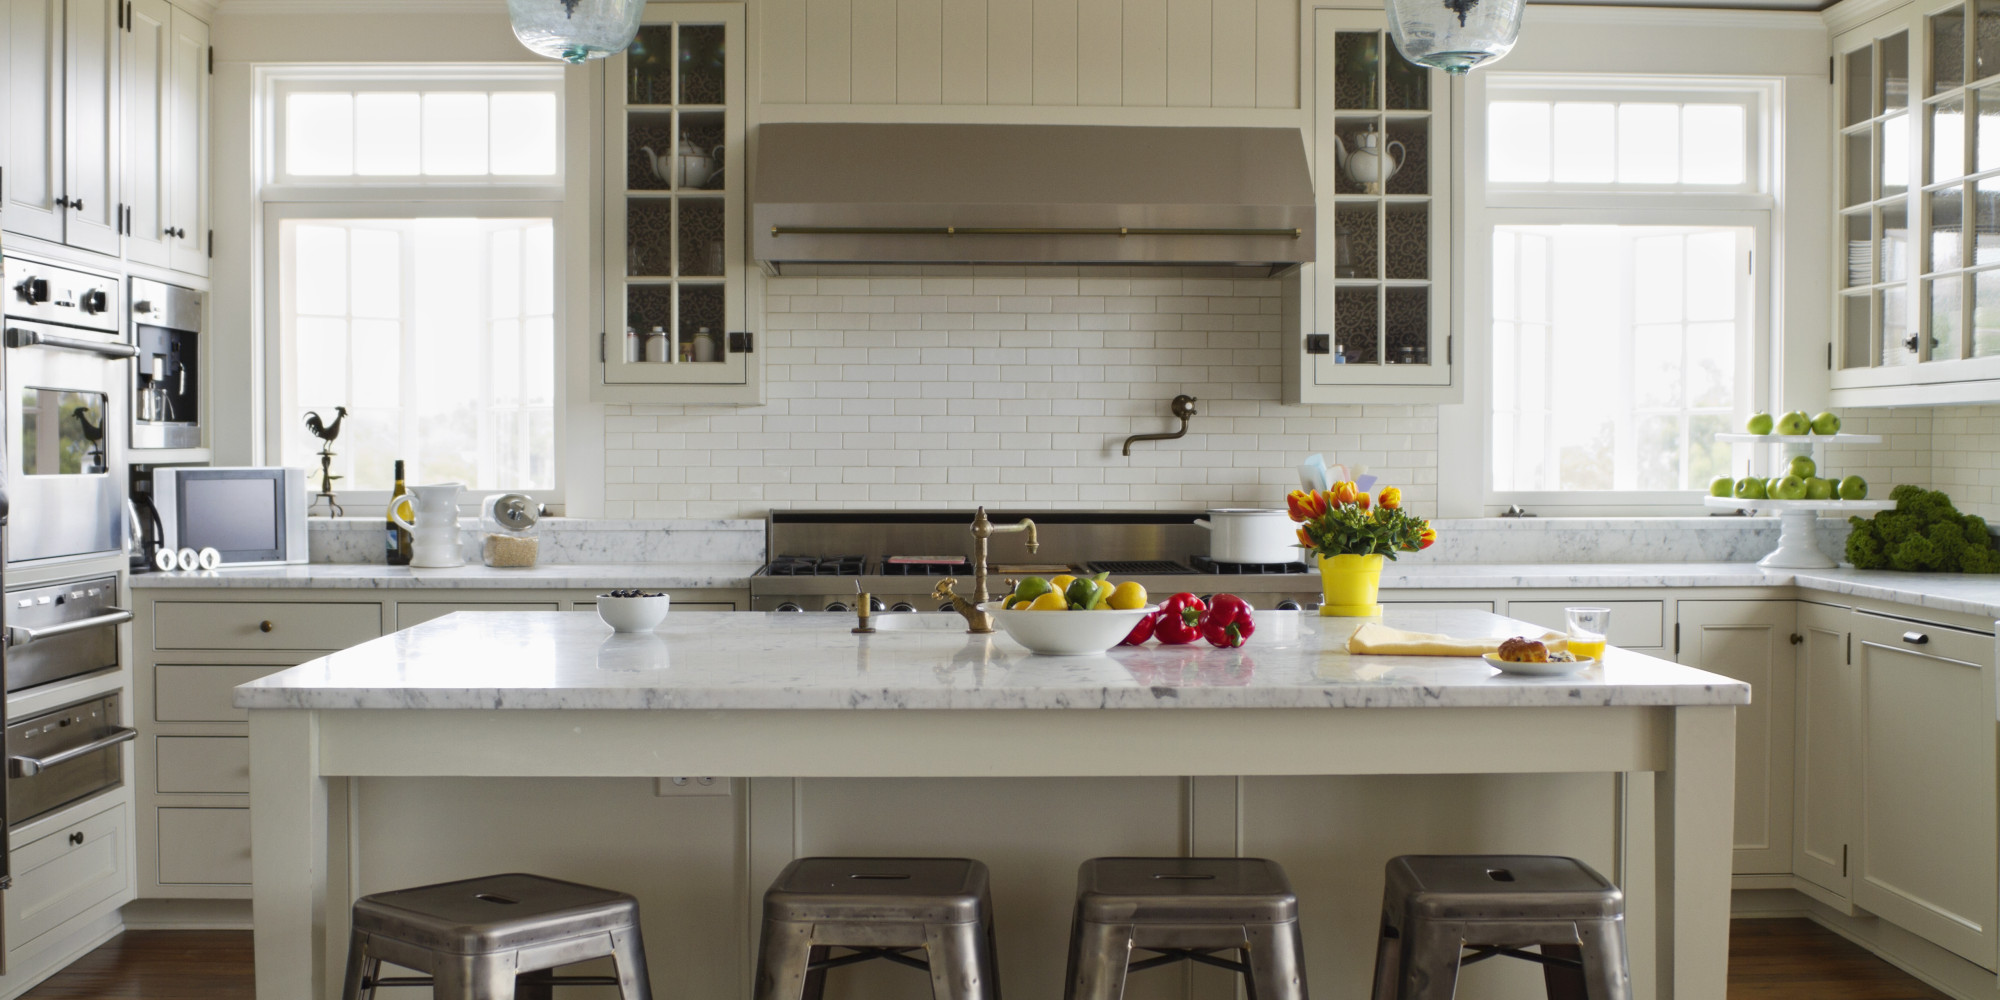 Kitchens 2014 Trends the 3 biggest kitchen trends of 2014 might surprise you (photos